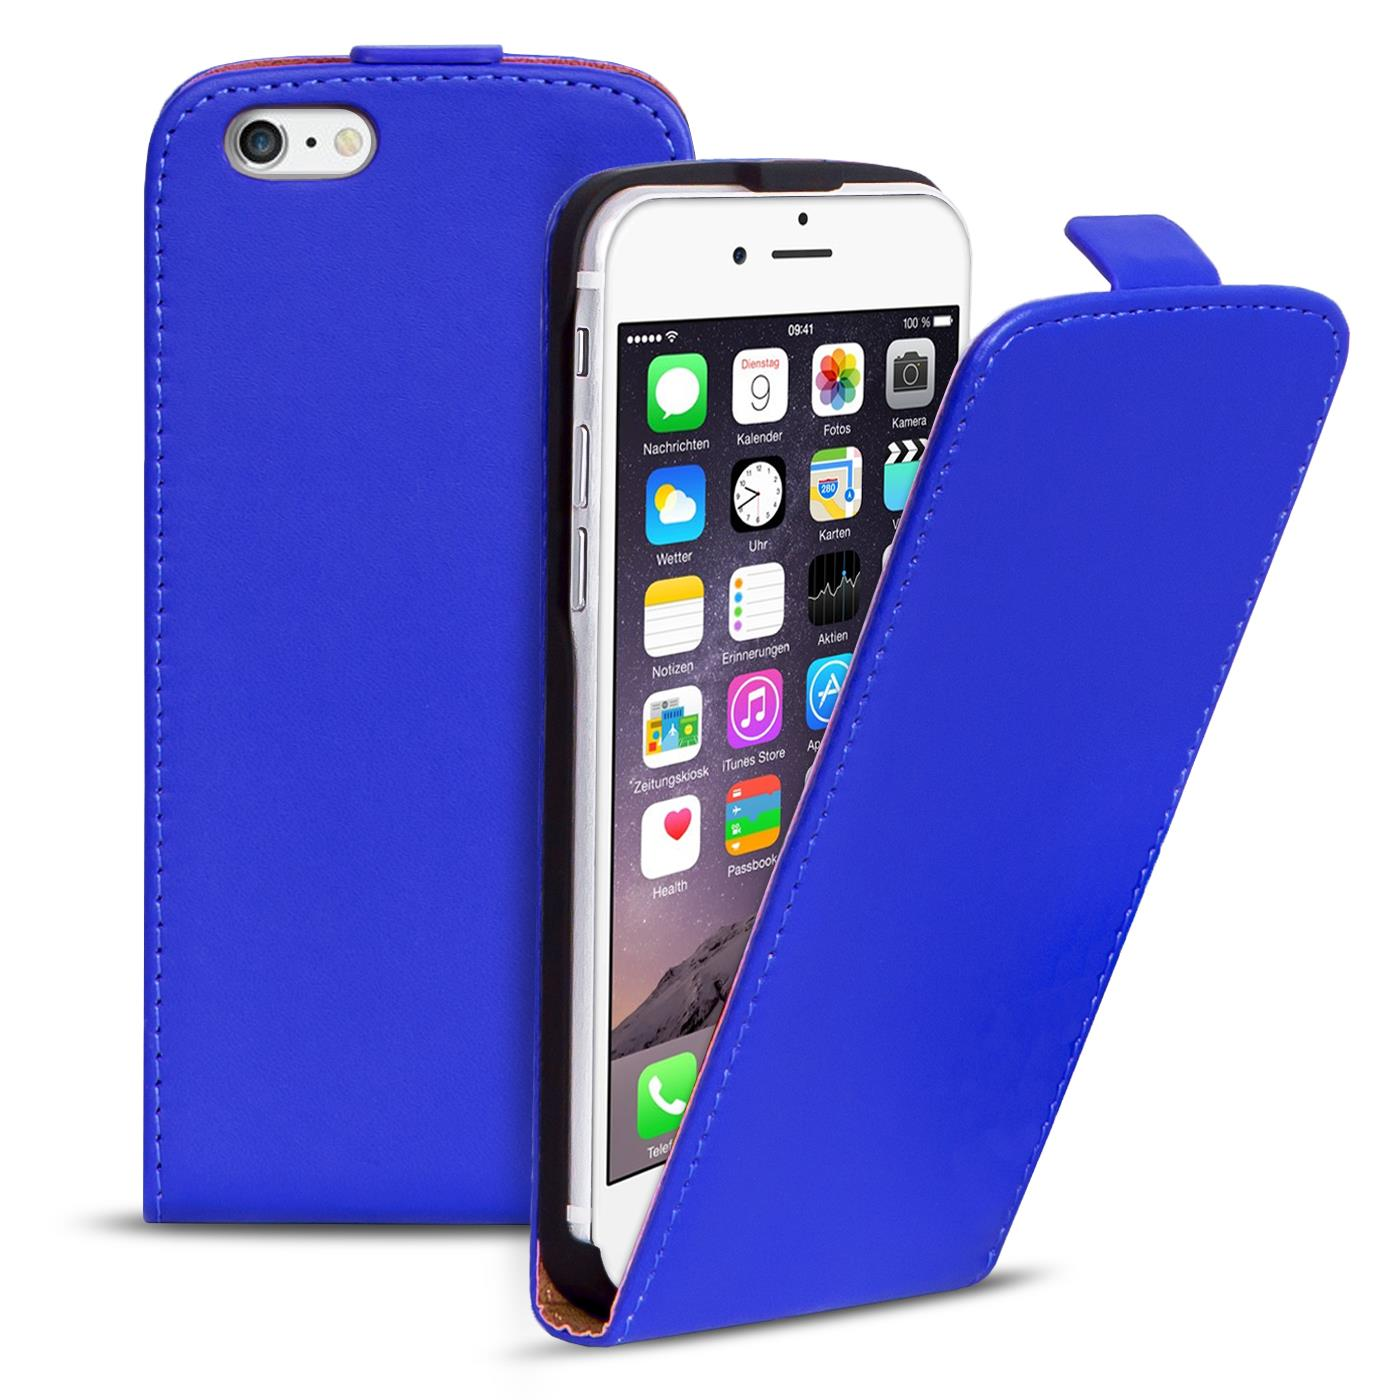 Tasche Fur Iphone